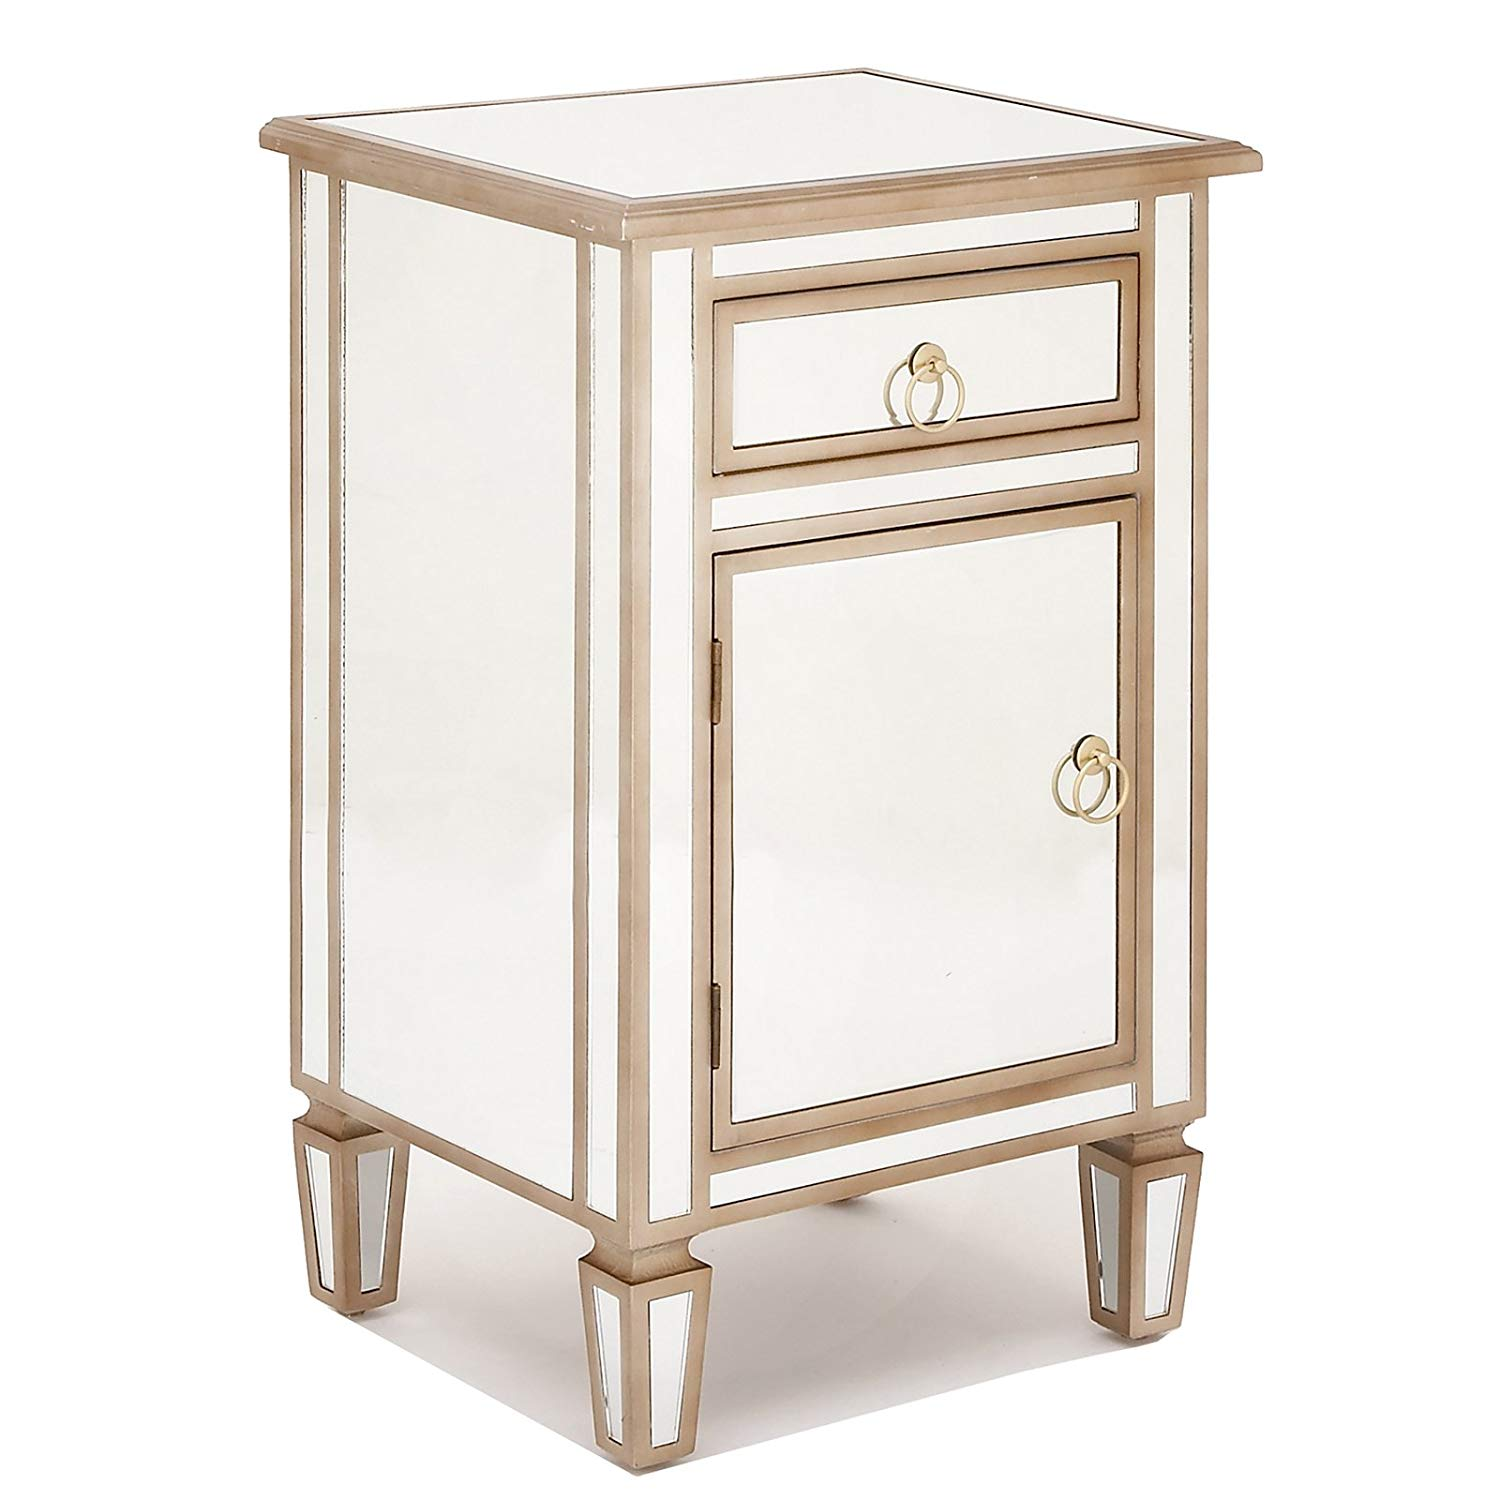 urban designs gold mirrored cabinet side table home accent with drawer kitchen antique shelf book stand target white bedside furniture covers metal tables bronze skirting painted